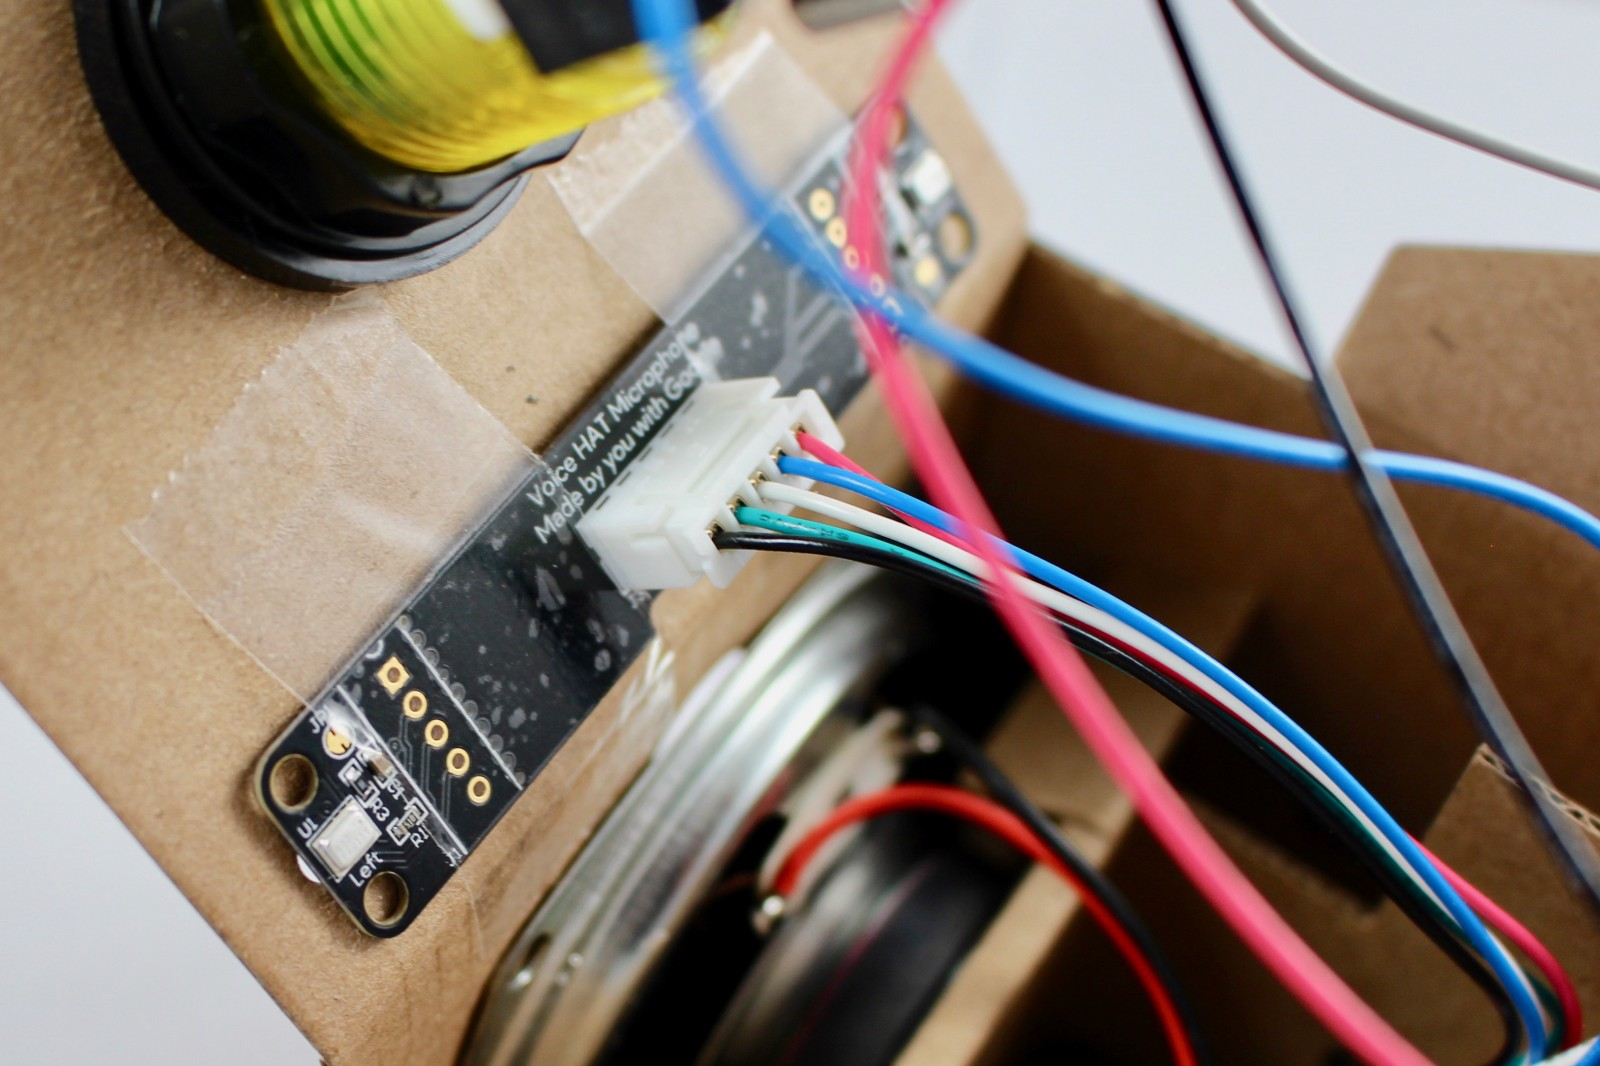 Hands On With The Aiy Projects Voice Kit Alasdair Allan Medium About A Foot And You Can Repurpose Those Wires Within Controller Taping Hat Microphone Daughter Board In Place